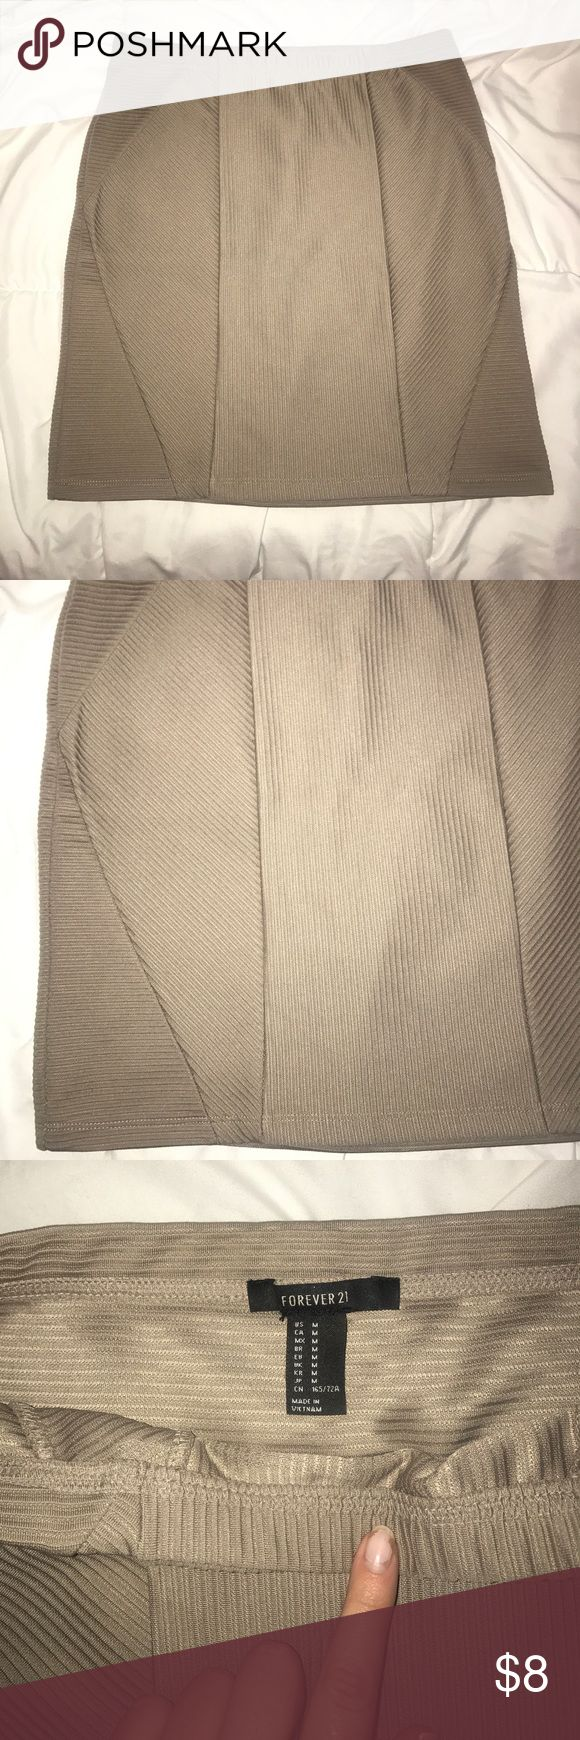 """Forever 21 tan bandage skirt Bandage-style mini skirt. Waist measures about 13"""" across and is about 16"""" in length (pictured). Bought the skirt with a small hole on the side seam and sewed it up again (pictured). Otherwise in perfect condition! Forever 21 Skirts Mini"""